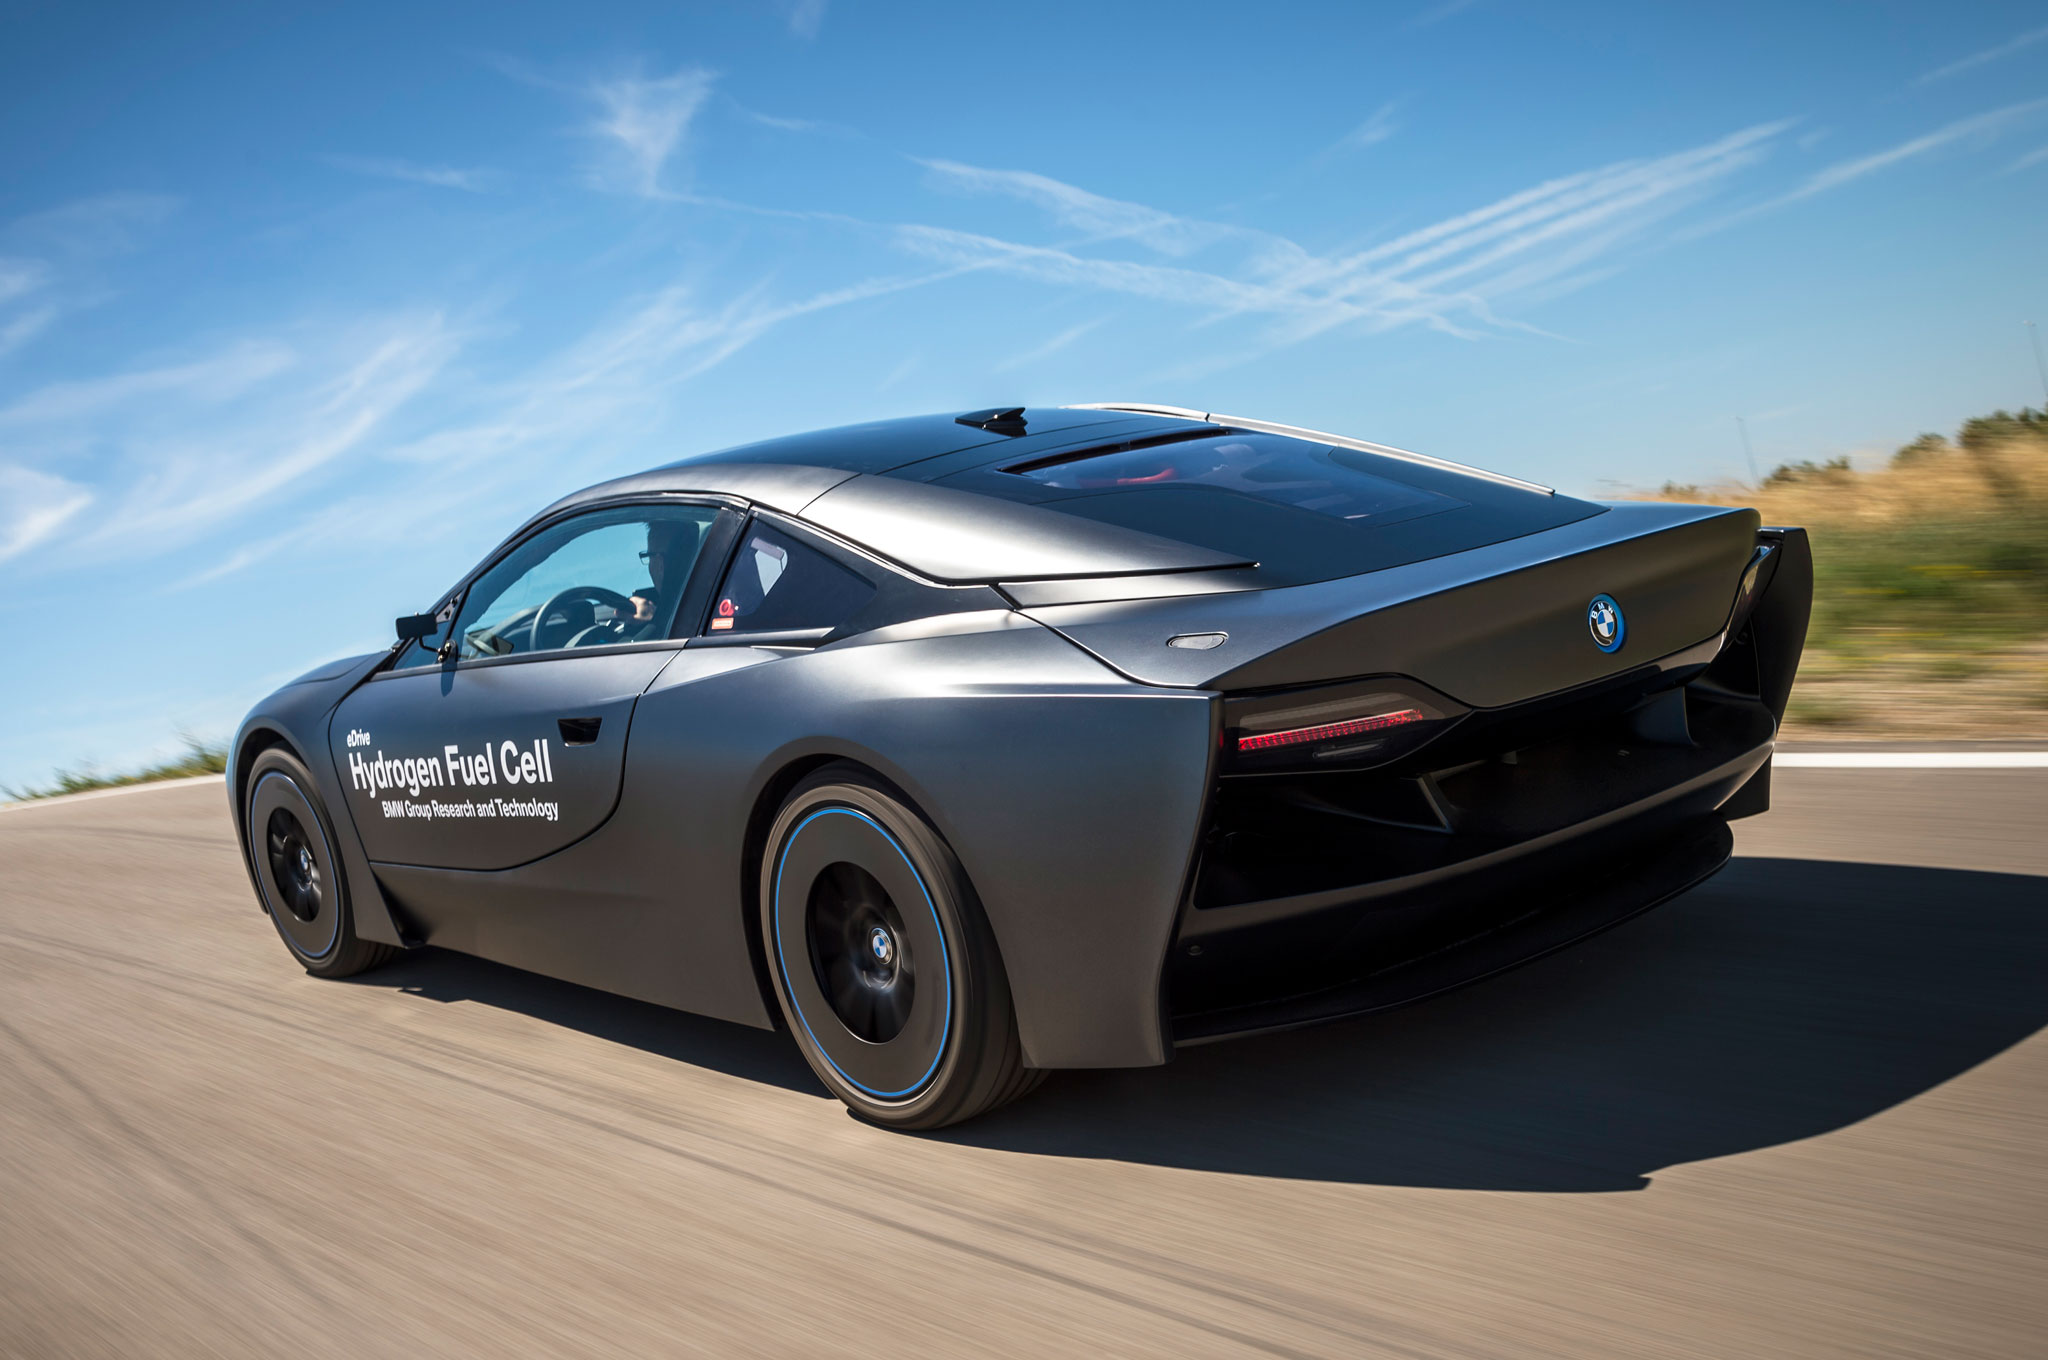 Bmw I8 5 Series Gt Hydrogen Fuel Cell Prototypes Revealed